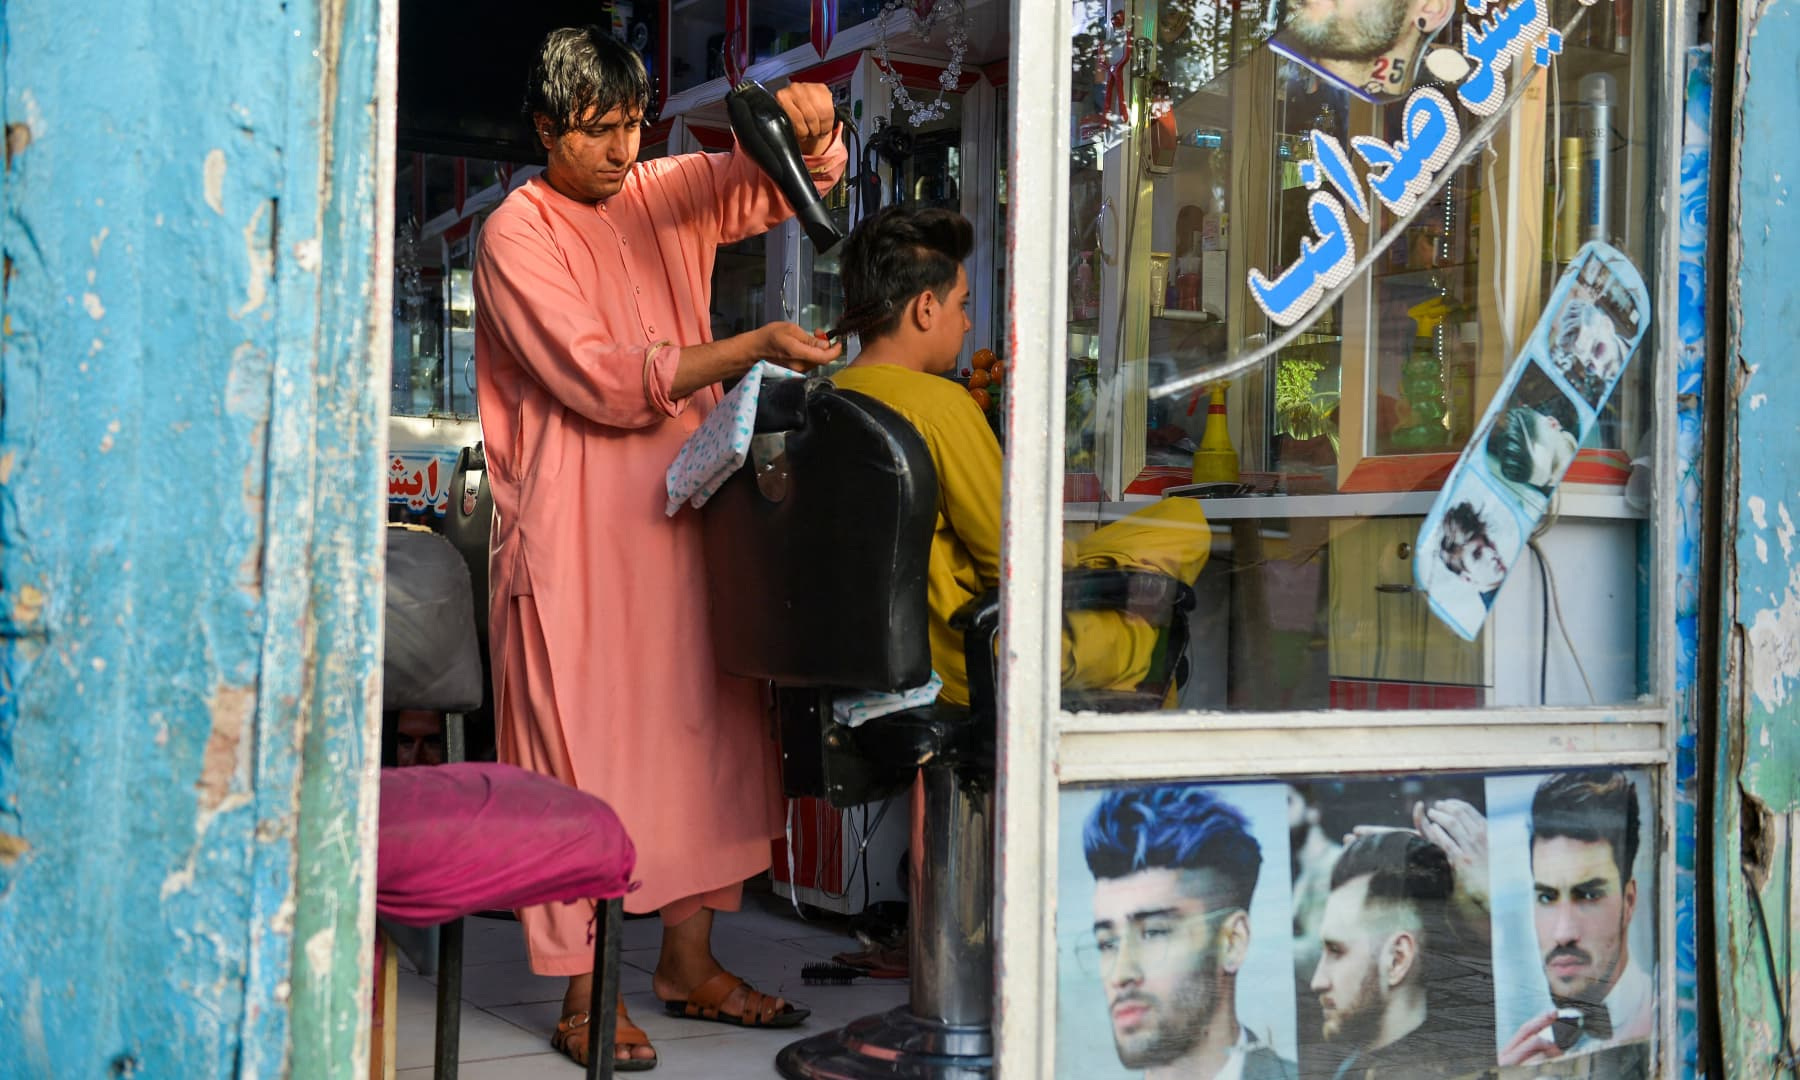 A barber attends a customer at his shop in Herat, Afghanistan on September 19, 2021. — AFP